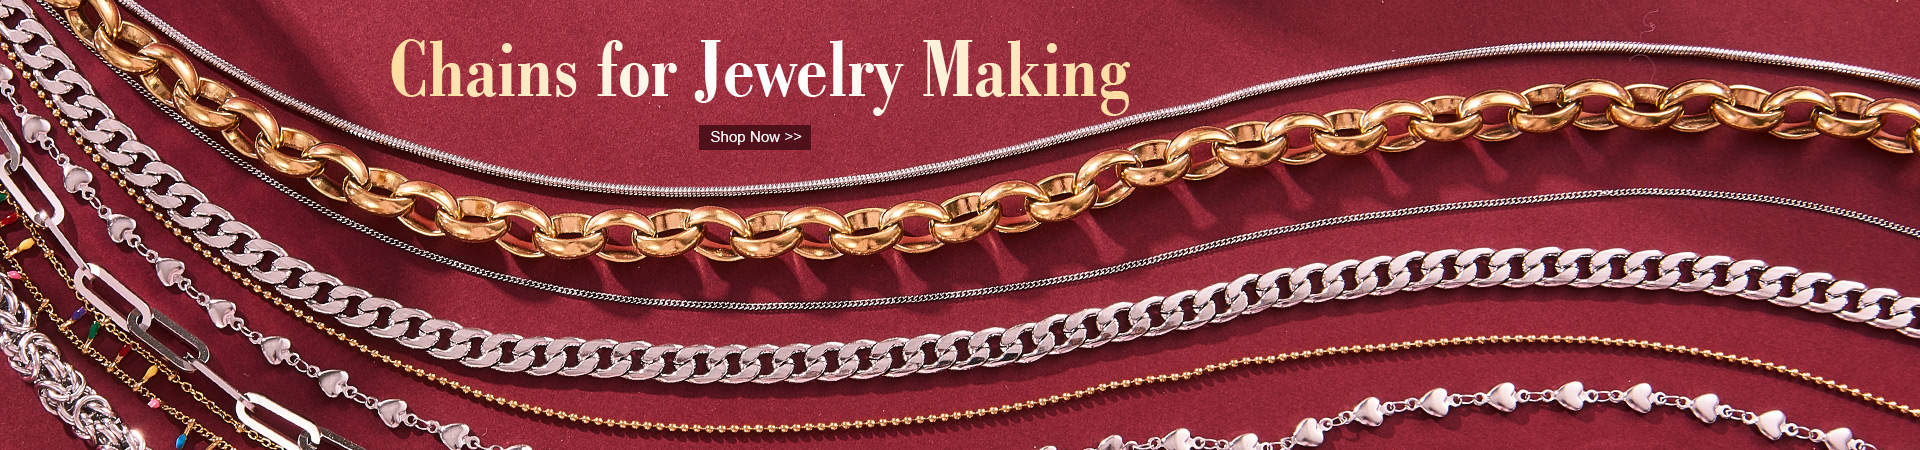 Chains for Jewelry Making